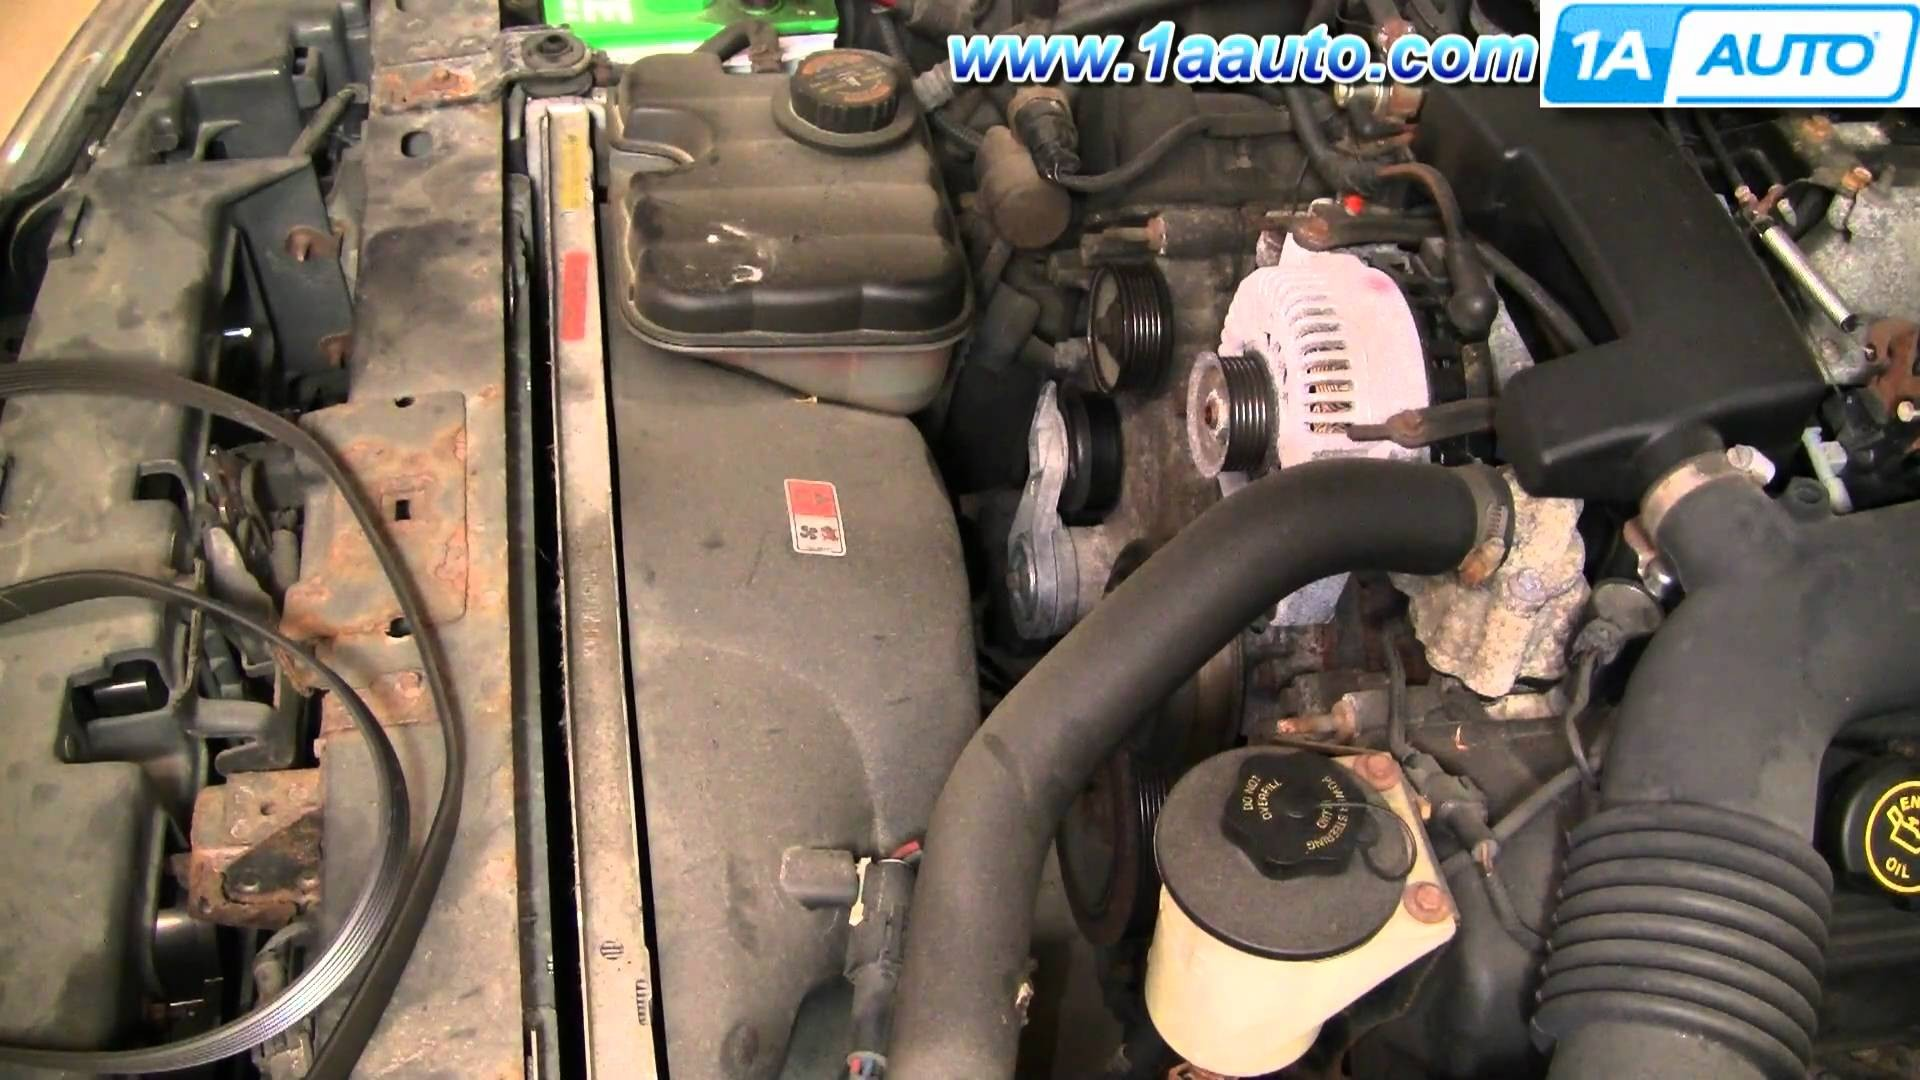 2000 Lincoln Navigator Engine Diagram How to Install Repair Replace Serpentine Belt Tensioner Lincoln town Of 2000 Lincoln Navigator Engine Diagram